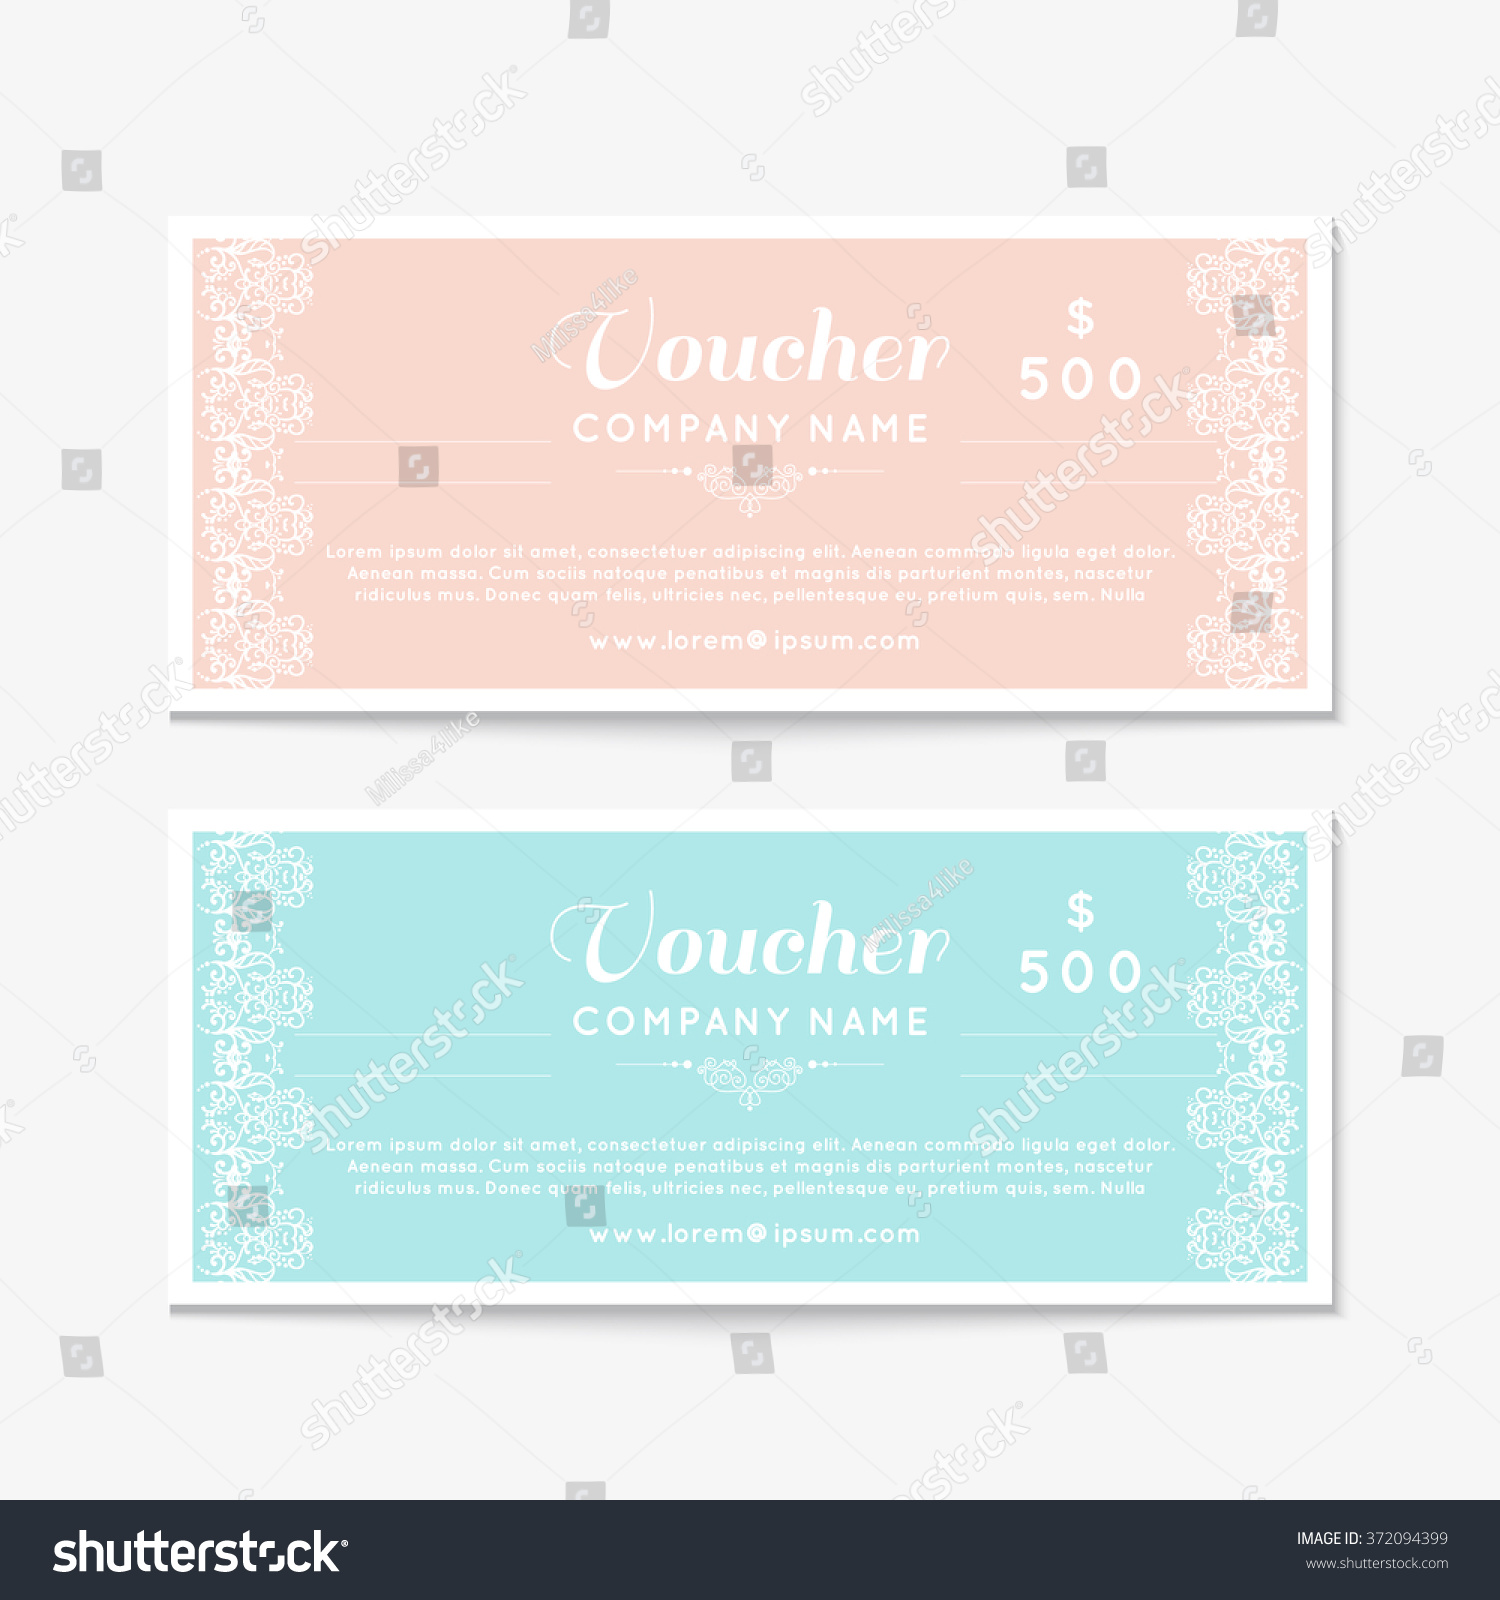 Voucher Template With Floral Pattern microsoft word invitation – Gift Certificate Voucher Template